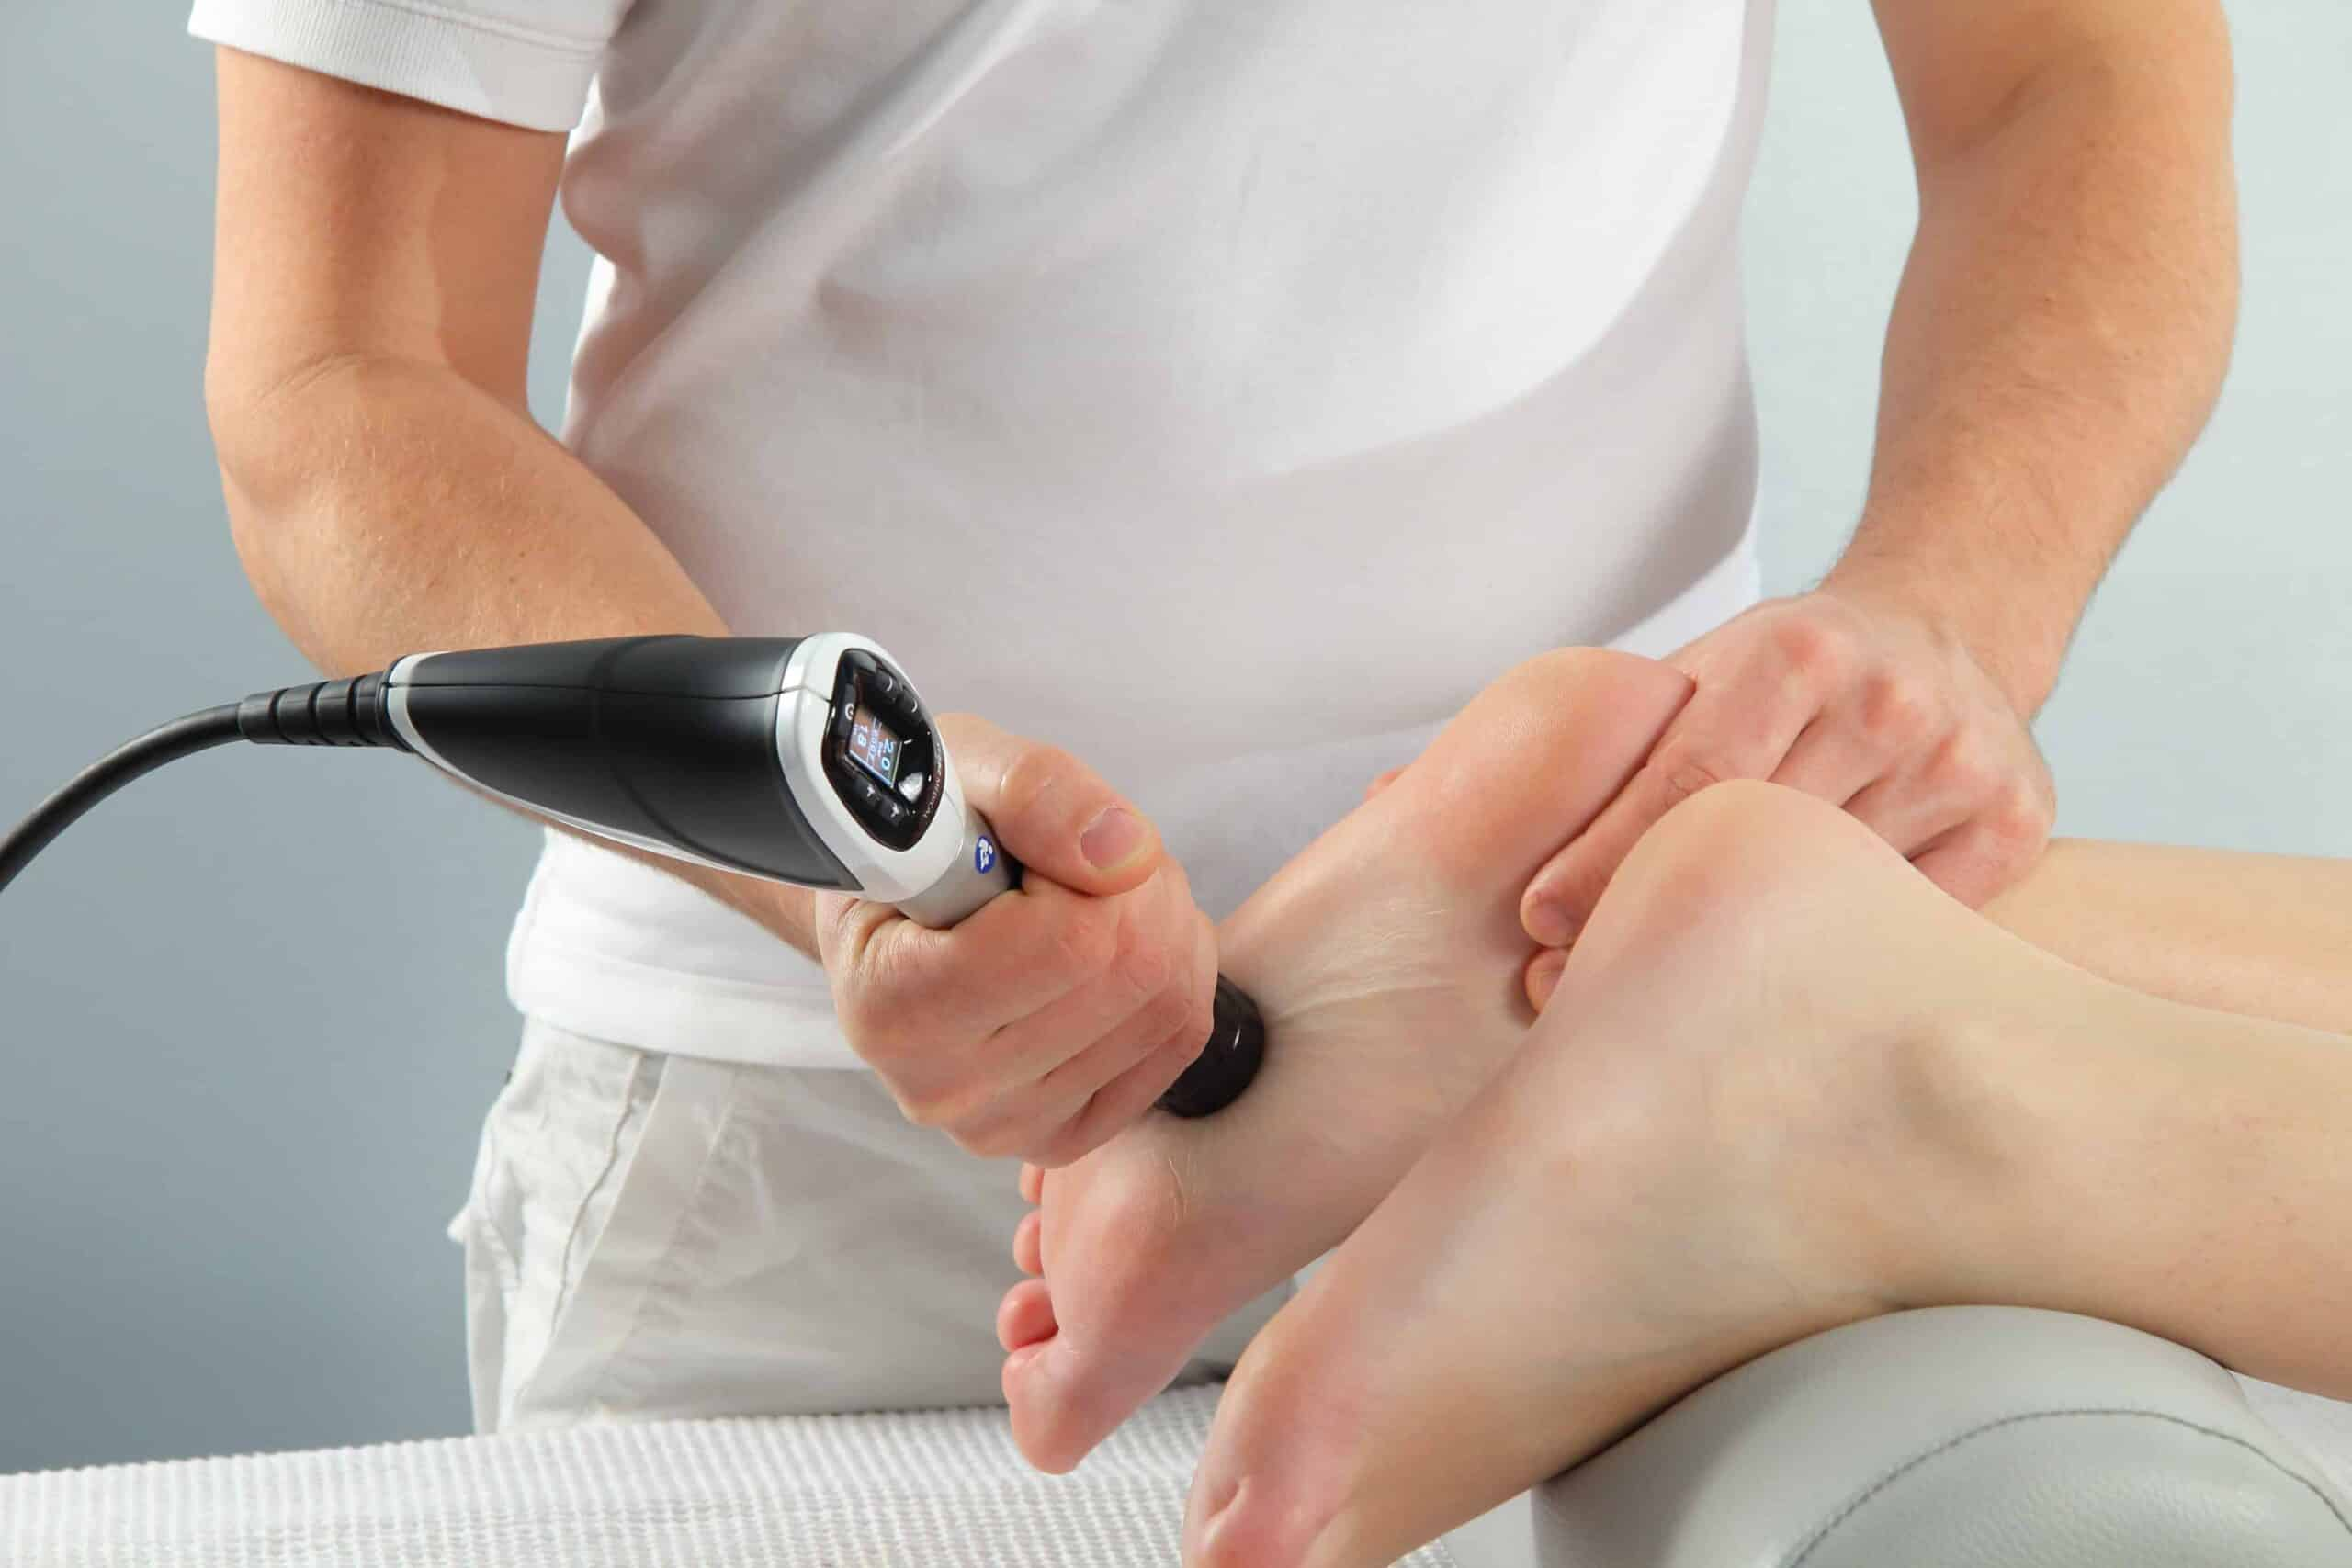 Doctor operate patient knee with machine